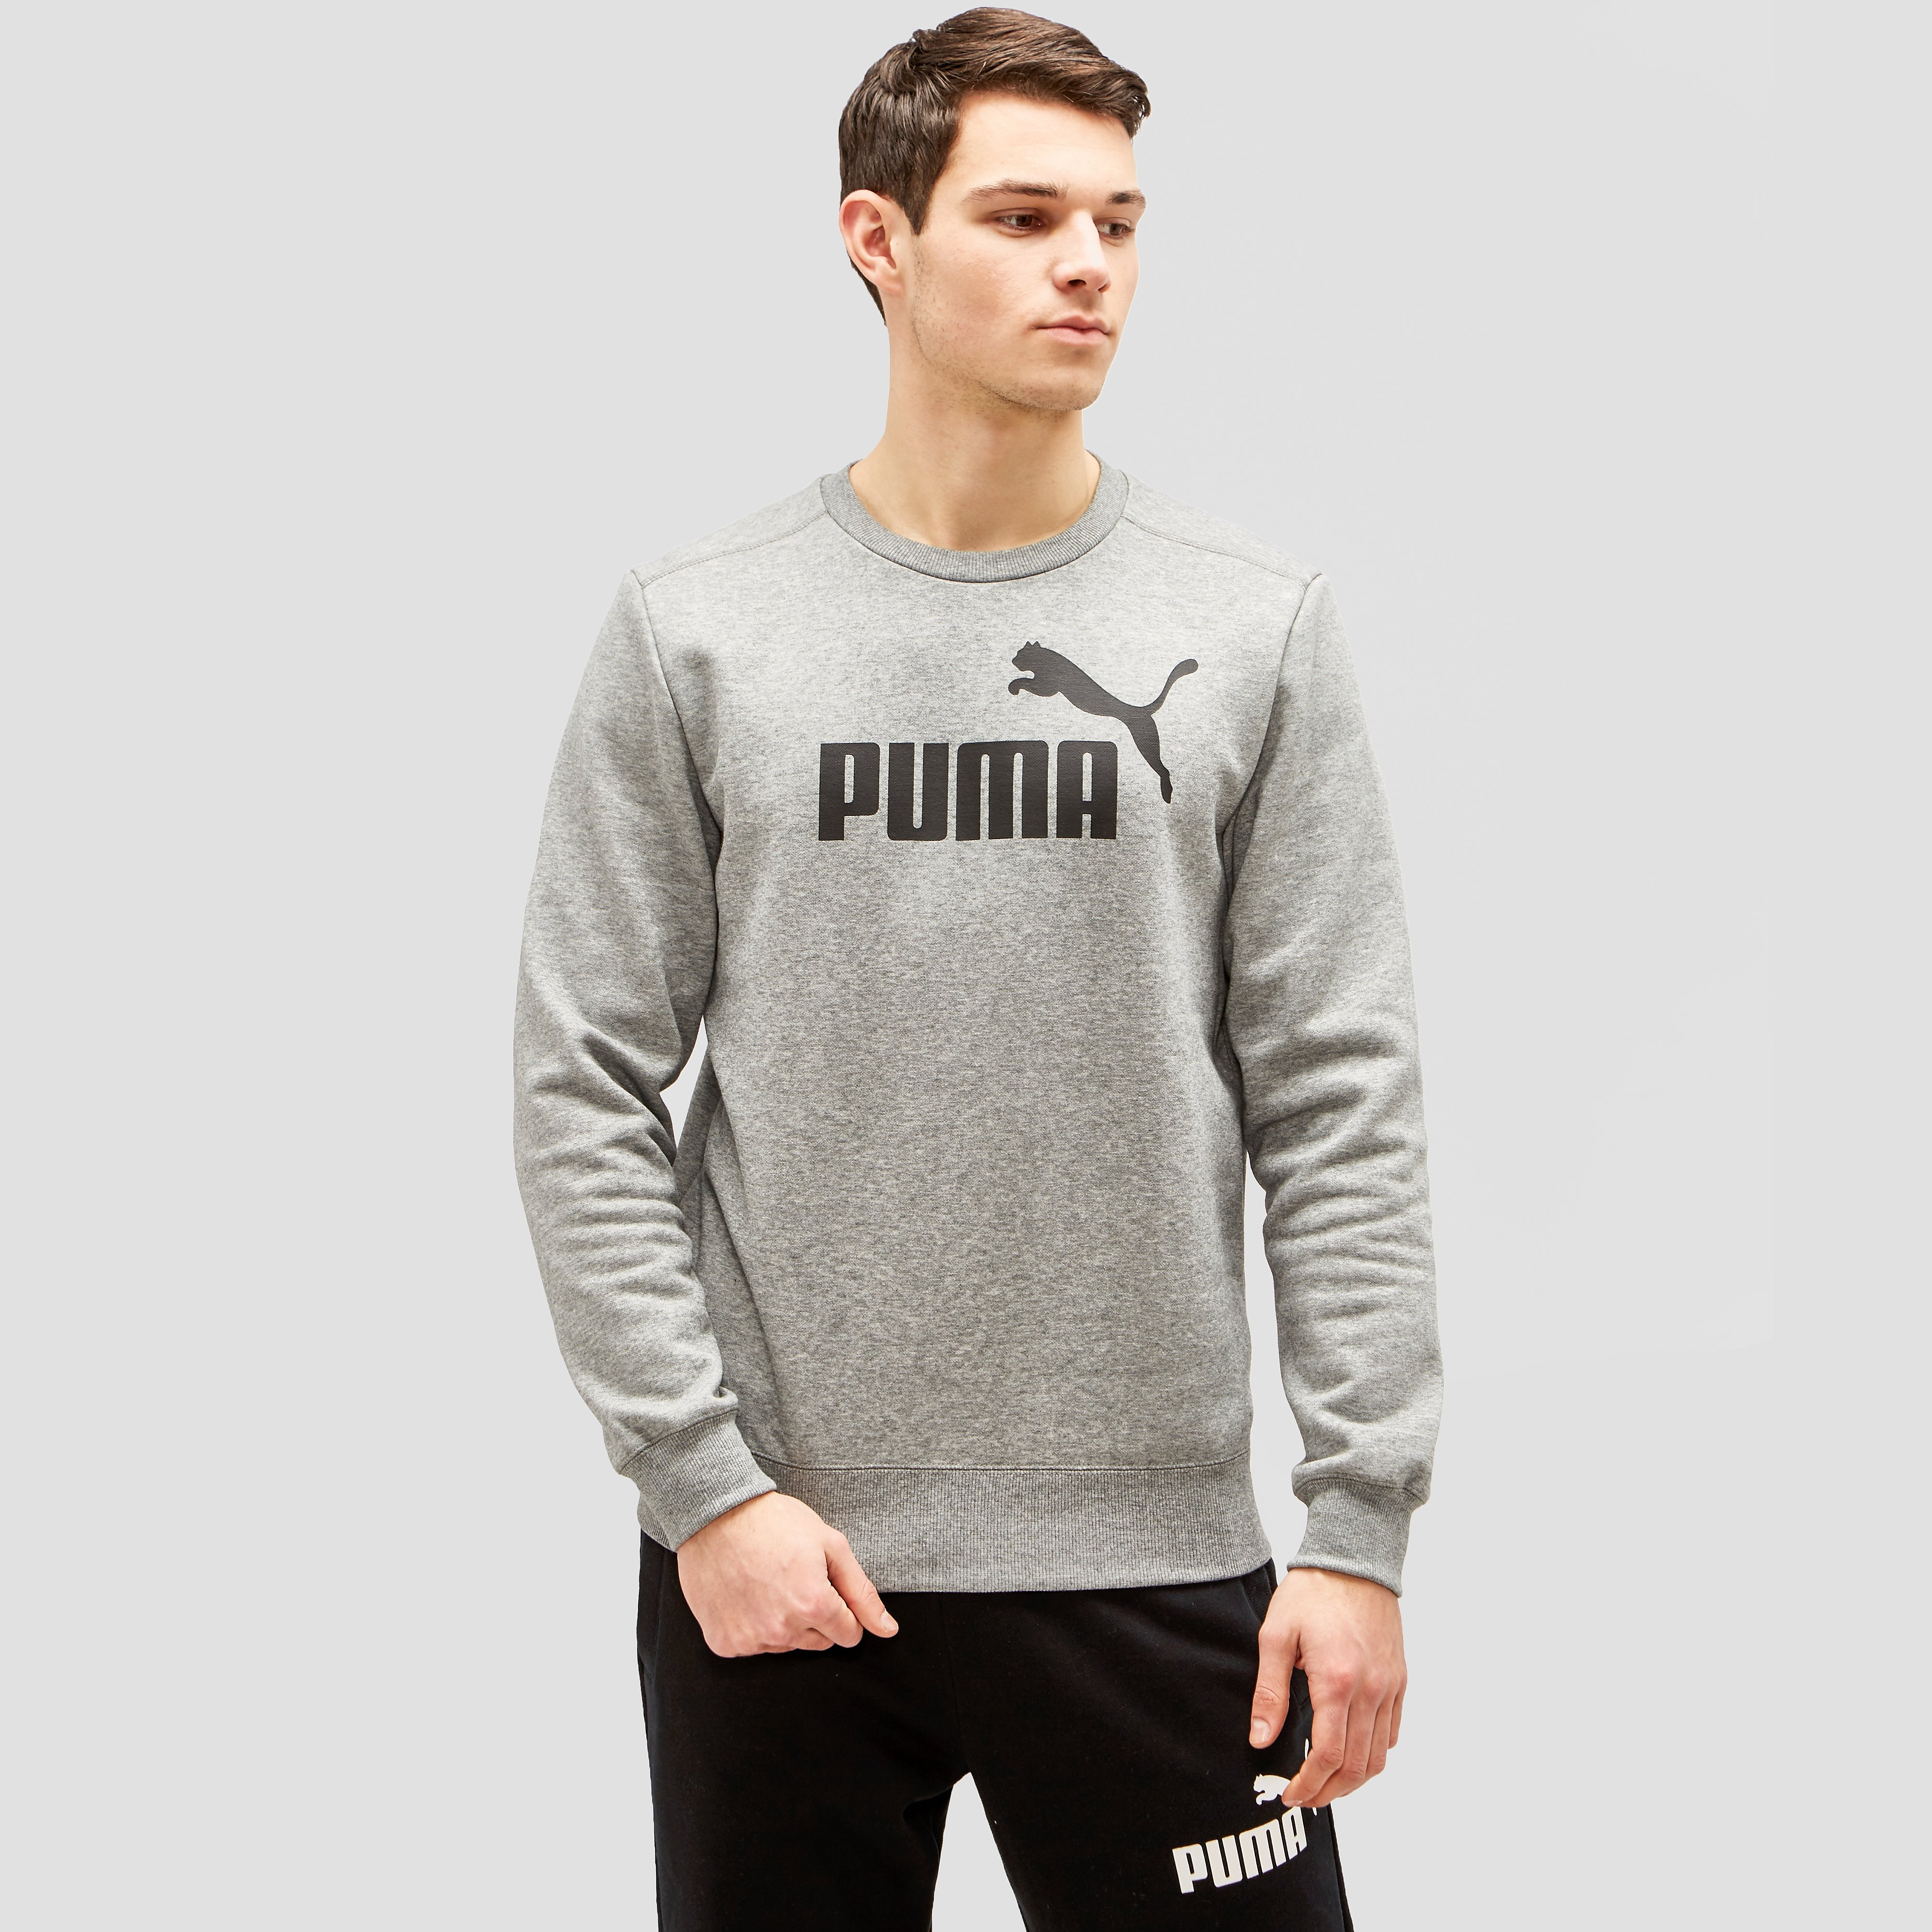 PUMA NO. 1 LOGO SWEATER HEREN